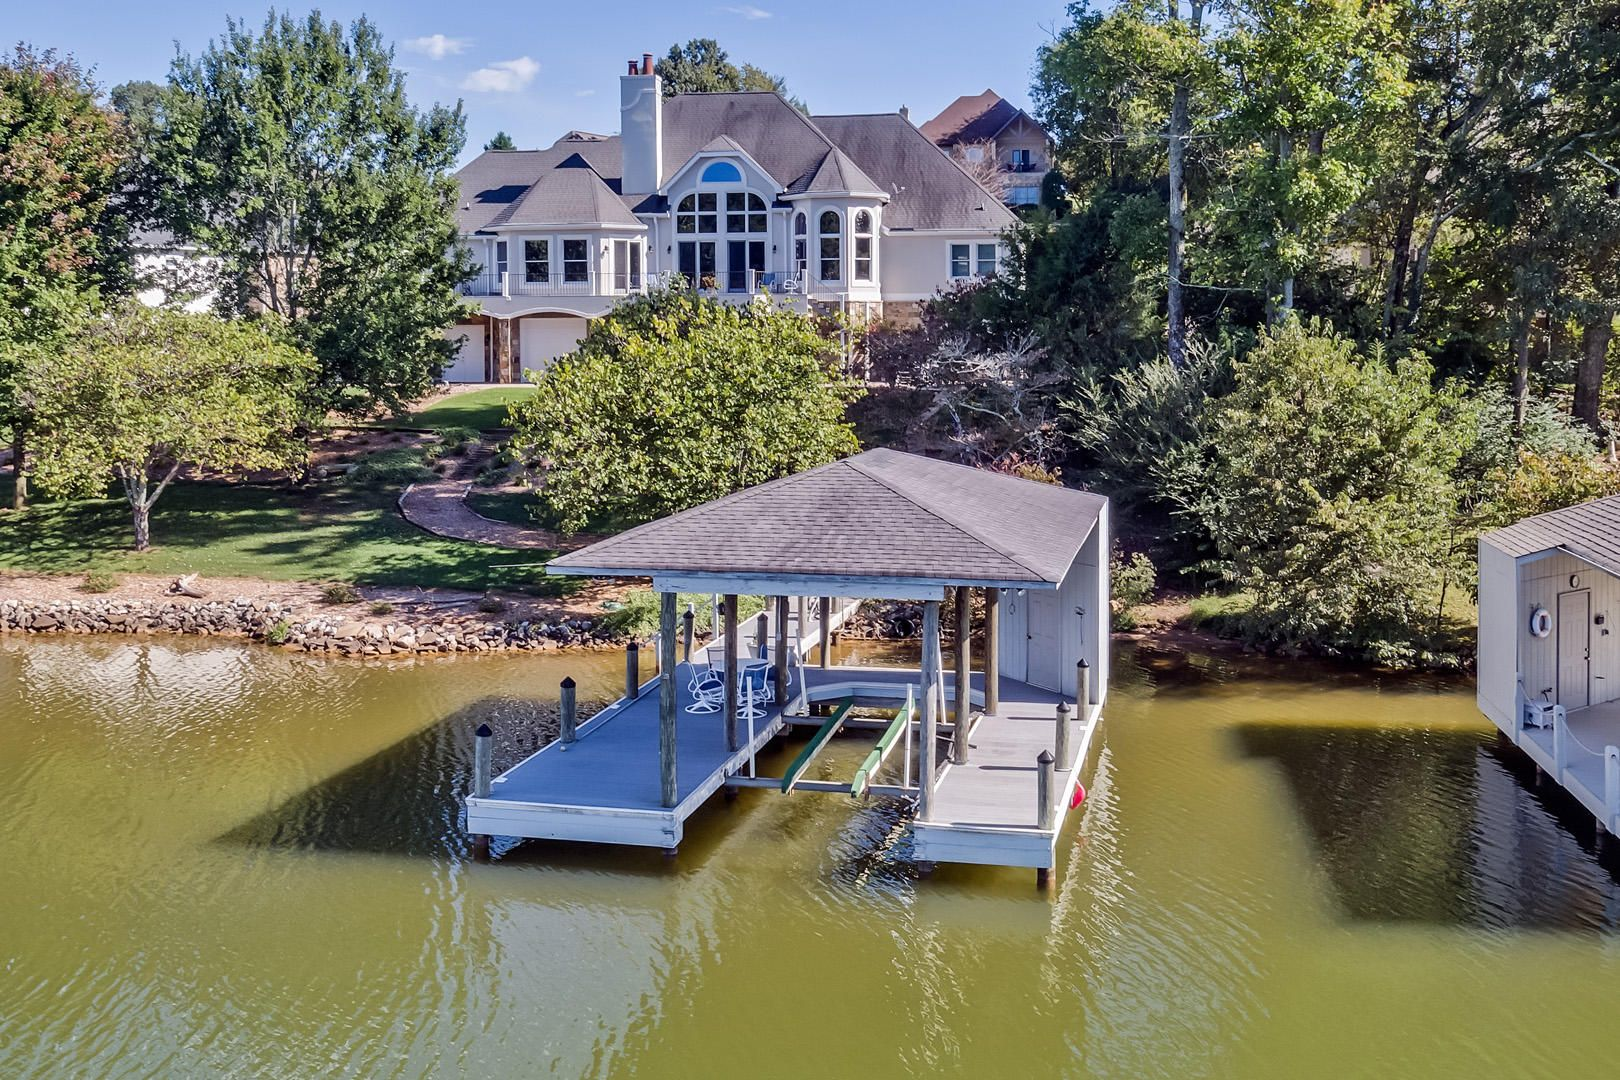 38_PineberryDrive_295_Dock02